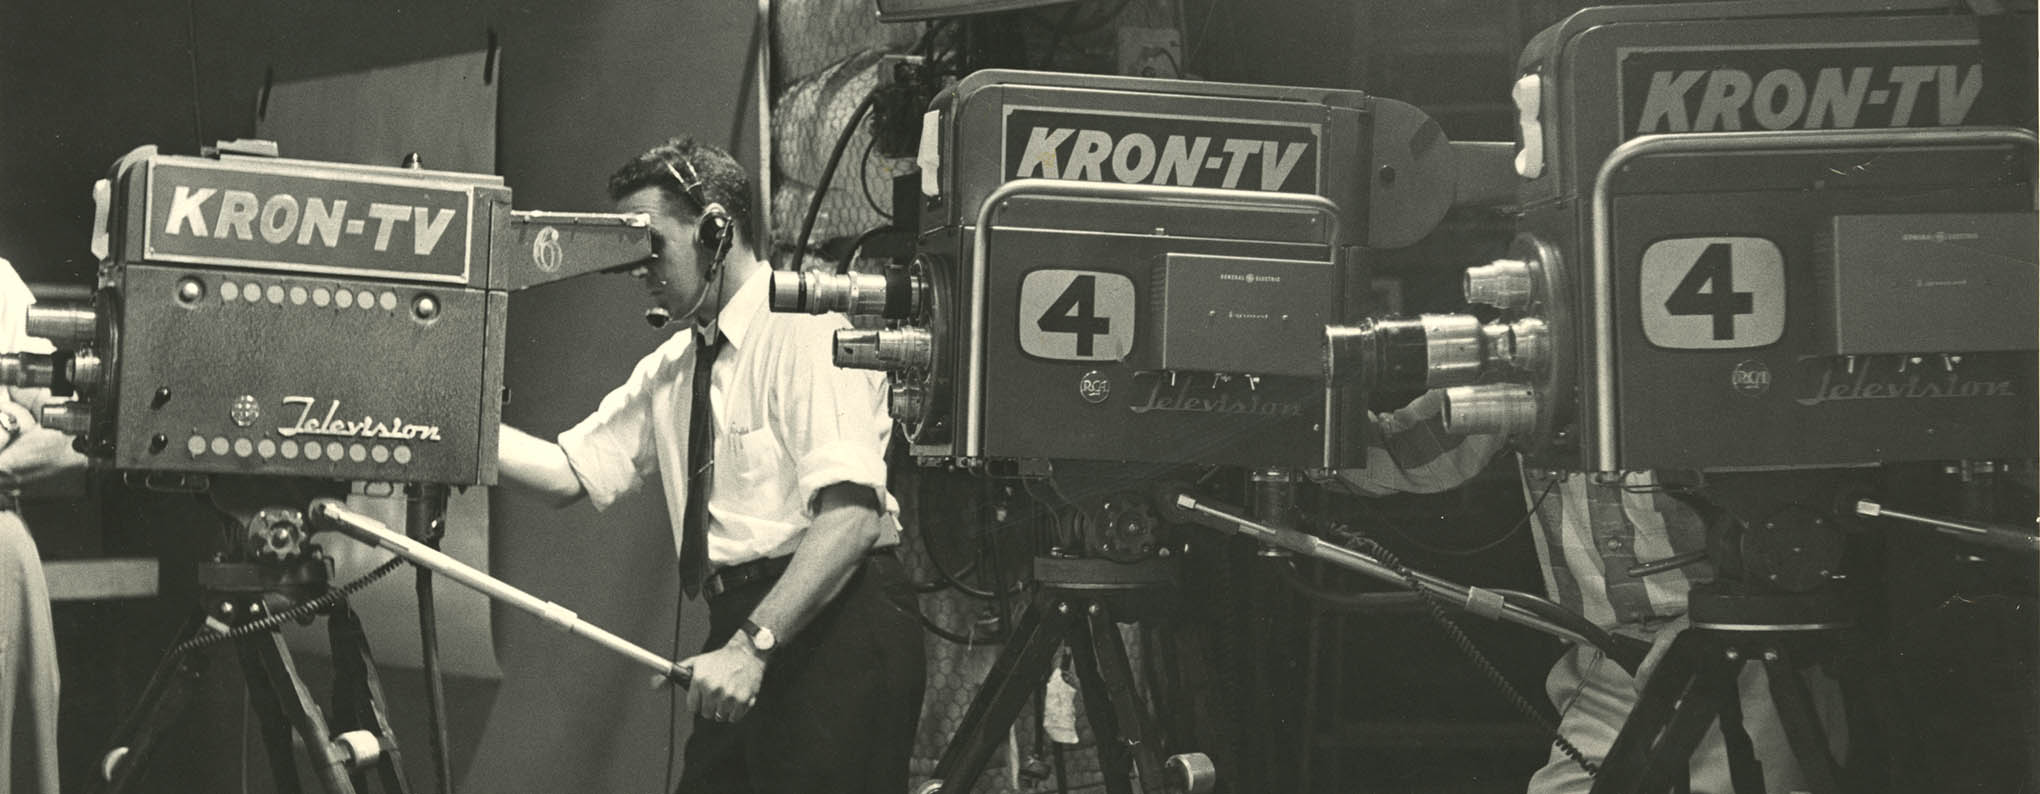 kron-tv cameras and operators from the 1960s